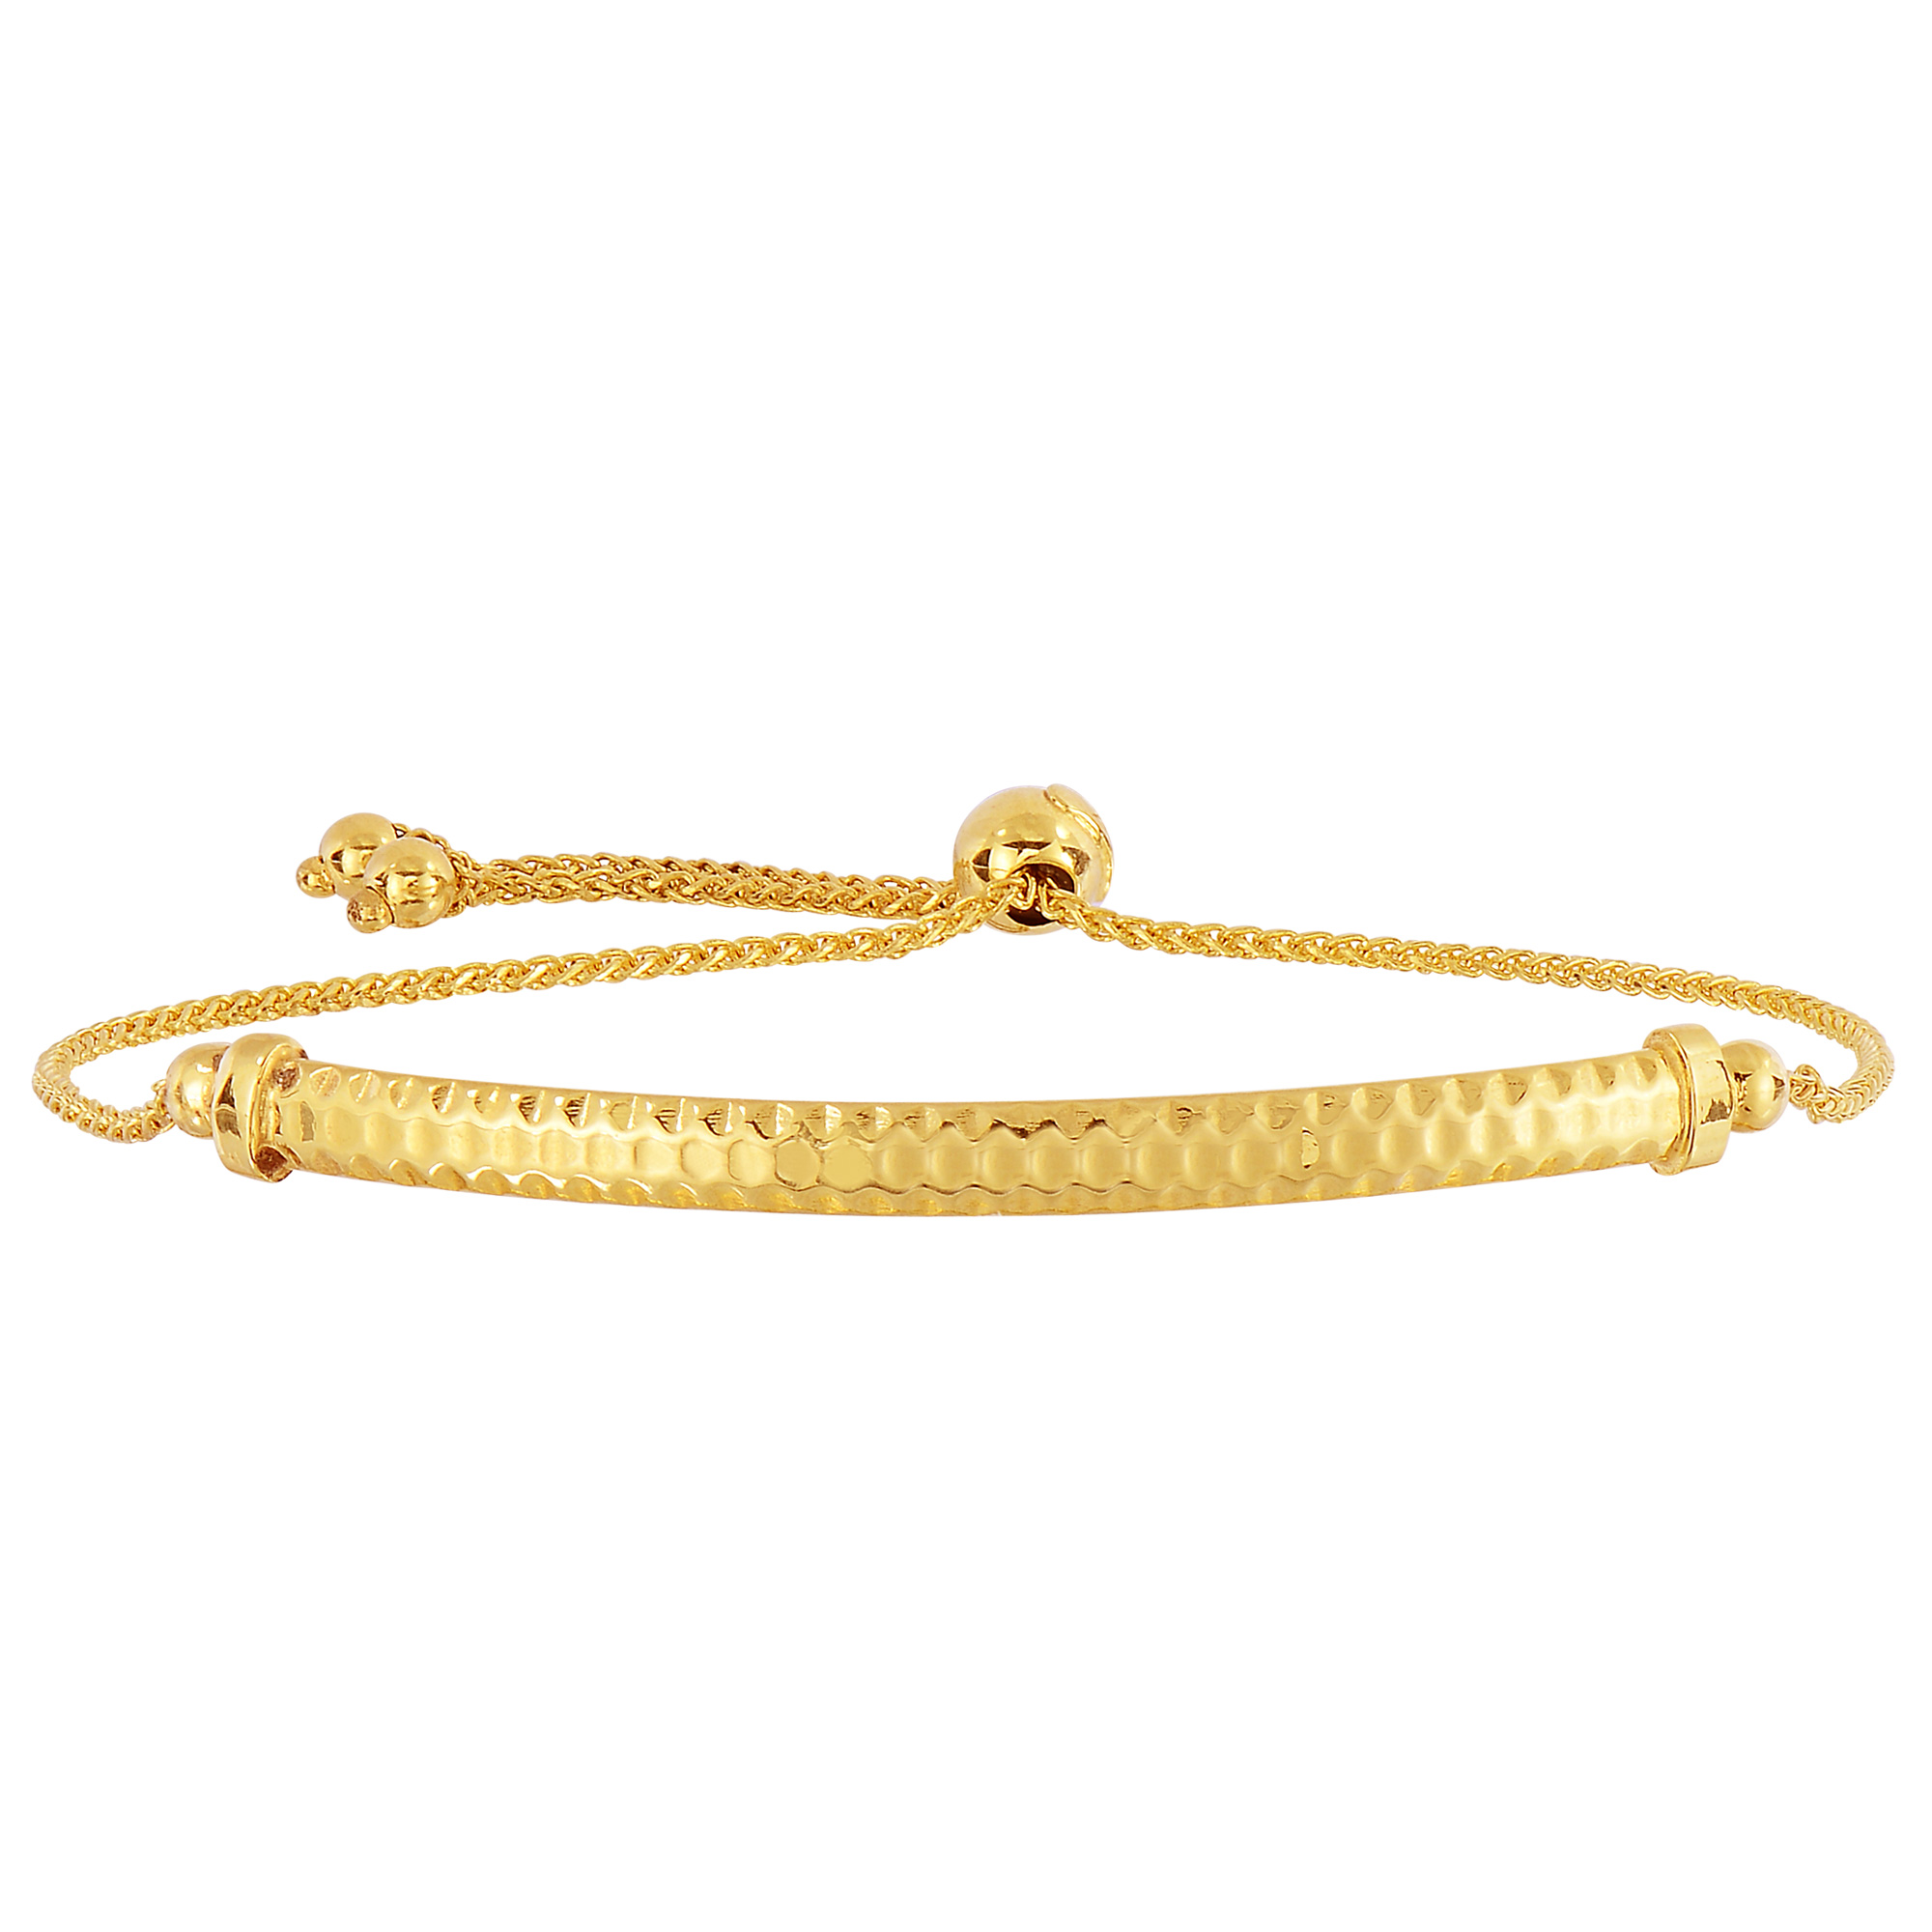 14K Yellow Gold Diamond Cut Round Wheat Adjustable Bracelet With Diamond Cut Arched Bar, 9.25  Crafted in 14K gold, Our BOLO friendship line of bracelets are stylish easy to wear and a one of a kind collection. Meticulously executed in high quality finish 14K gold, these iconic bracelets are easily adjusted to fit any wrist. Each unique style of our Friendship collection looks beautiful worn as one piece alone or stacked with multiple styles for a layered and modern look. The bracelet comes in an elegant jewelry gift box, perfect for any gift giving occasion.